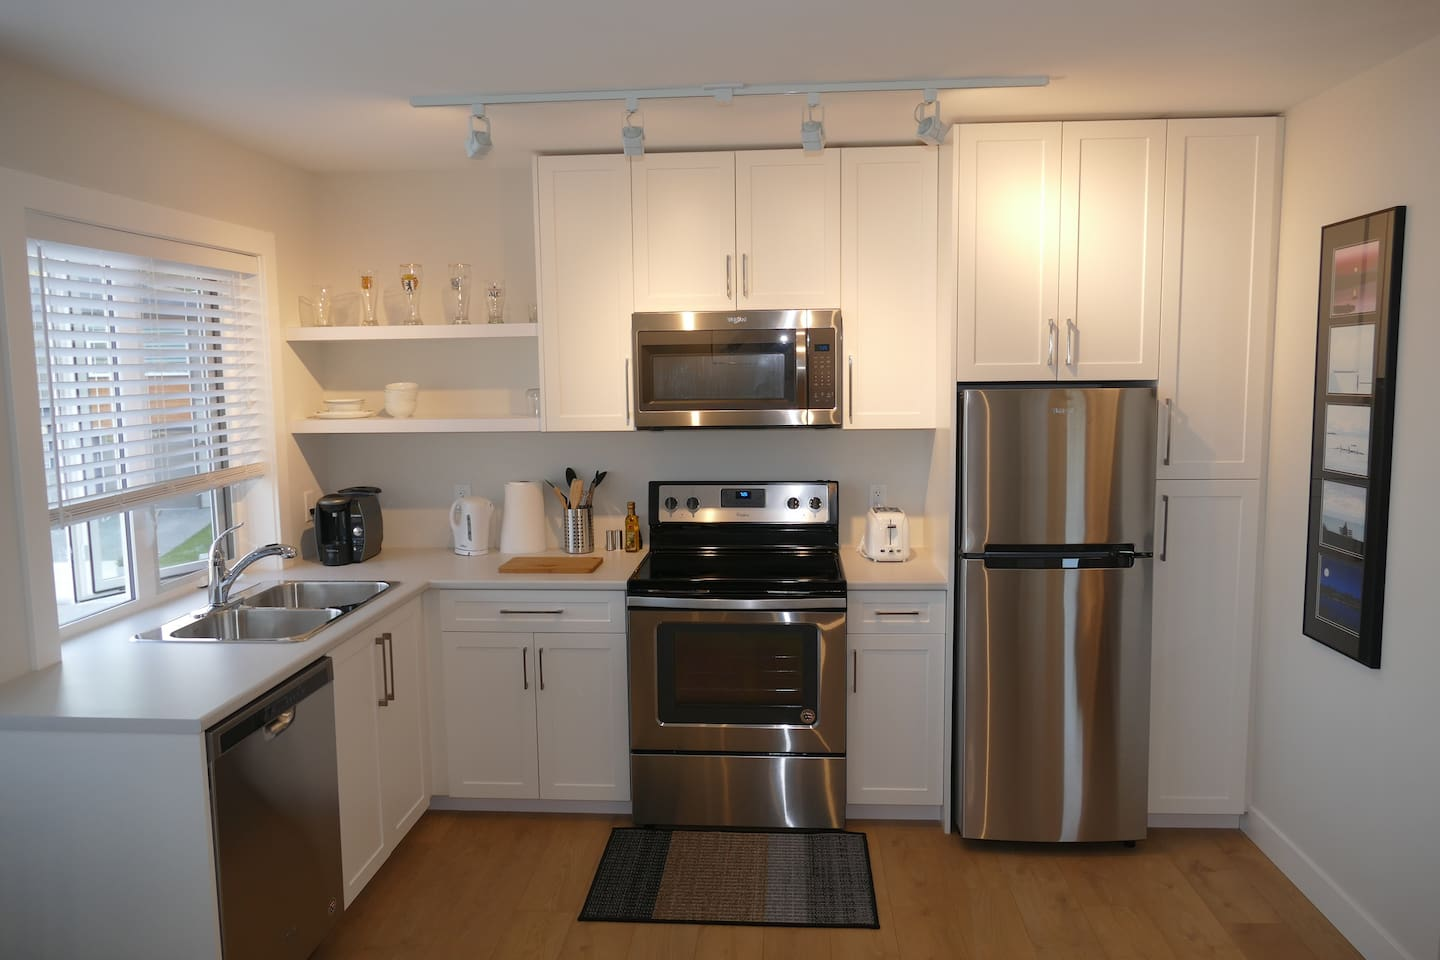 This brand new kitchen has everything you need for your stay.